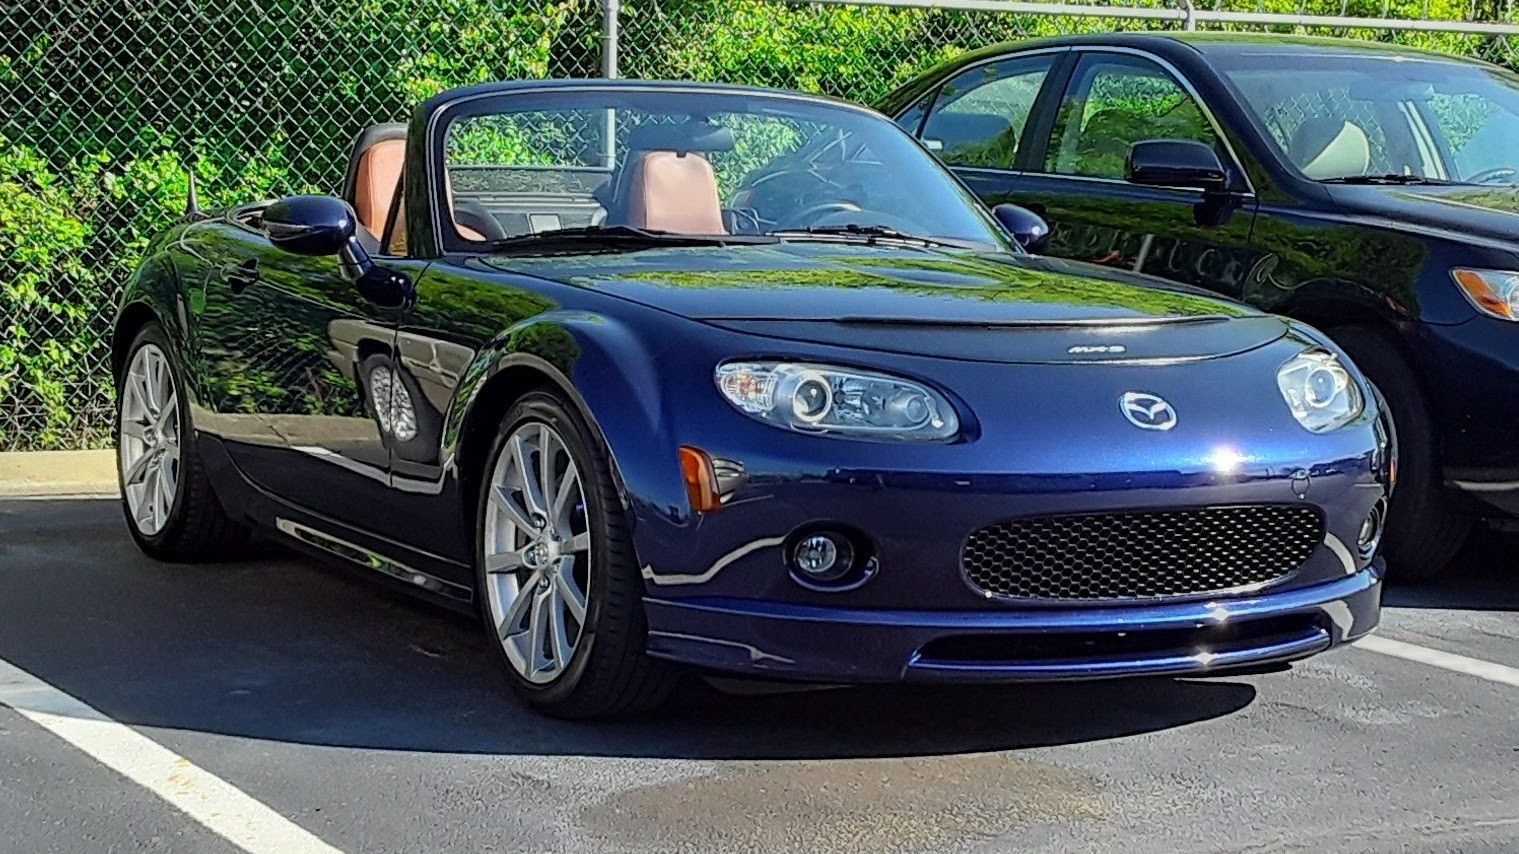 Pin by Ty Gobble on My 2008 Mazda MX5 Grand Touring in